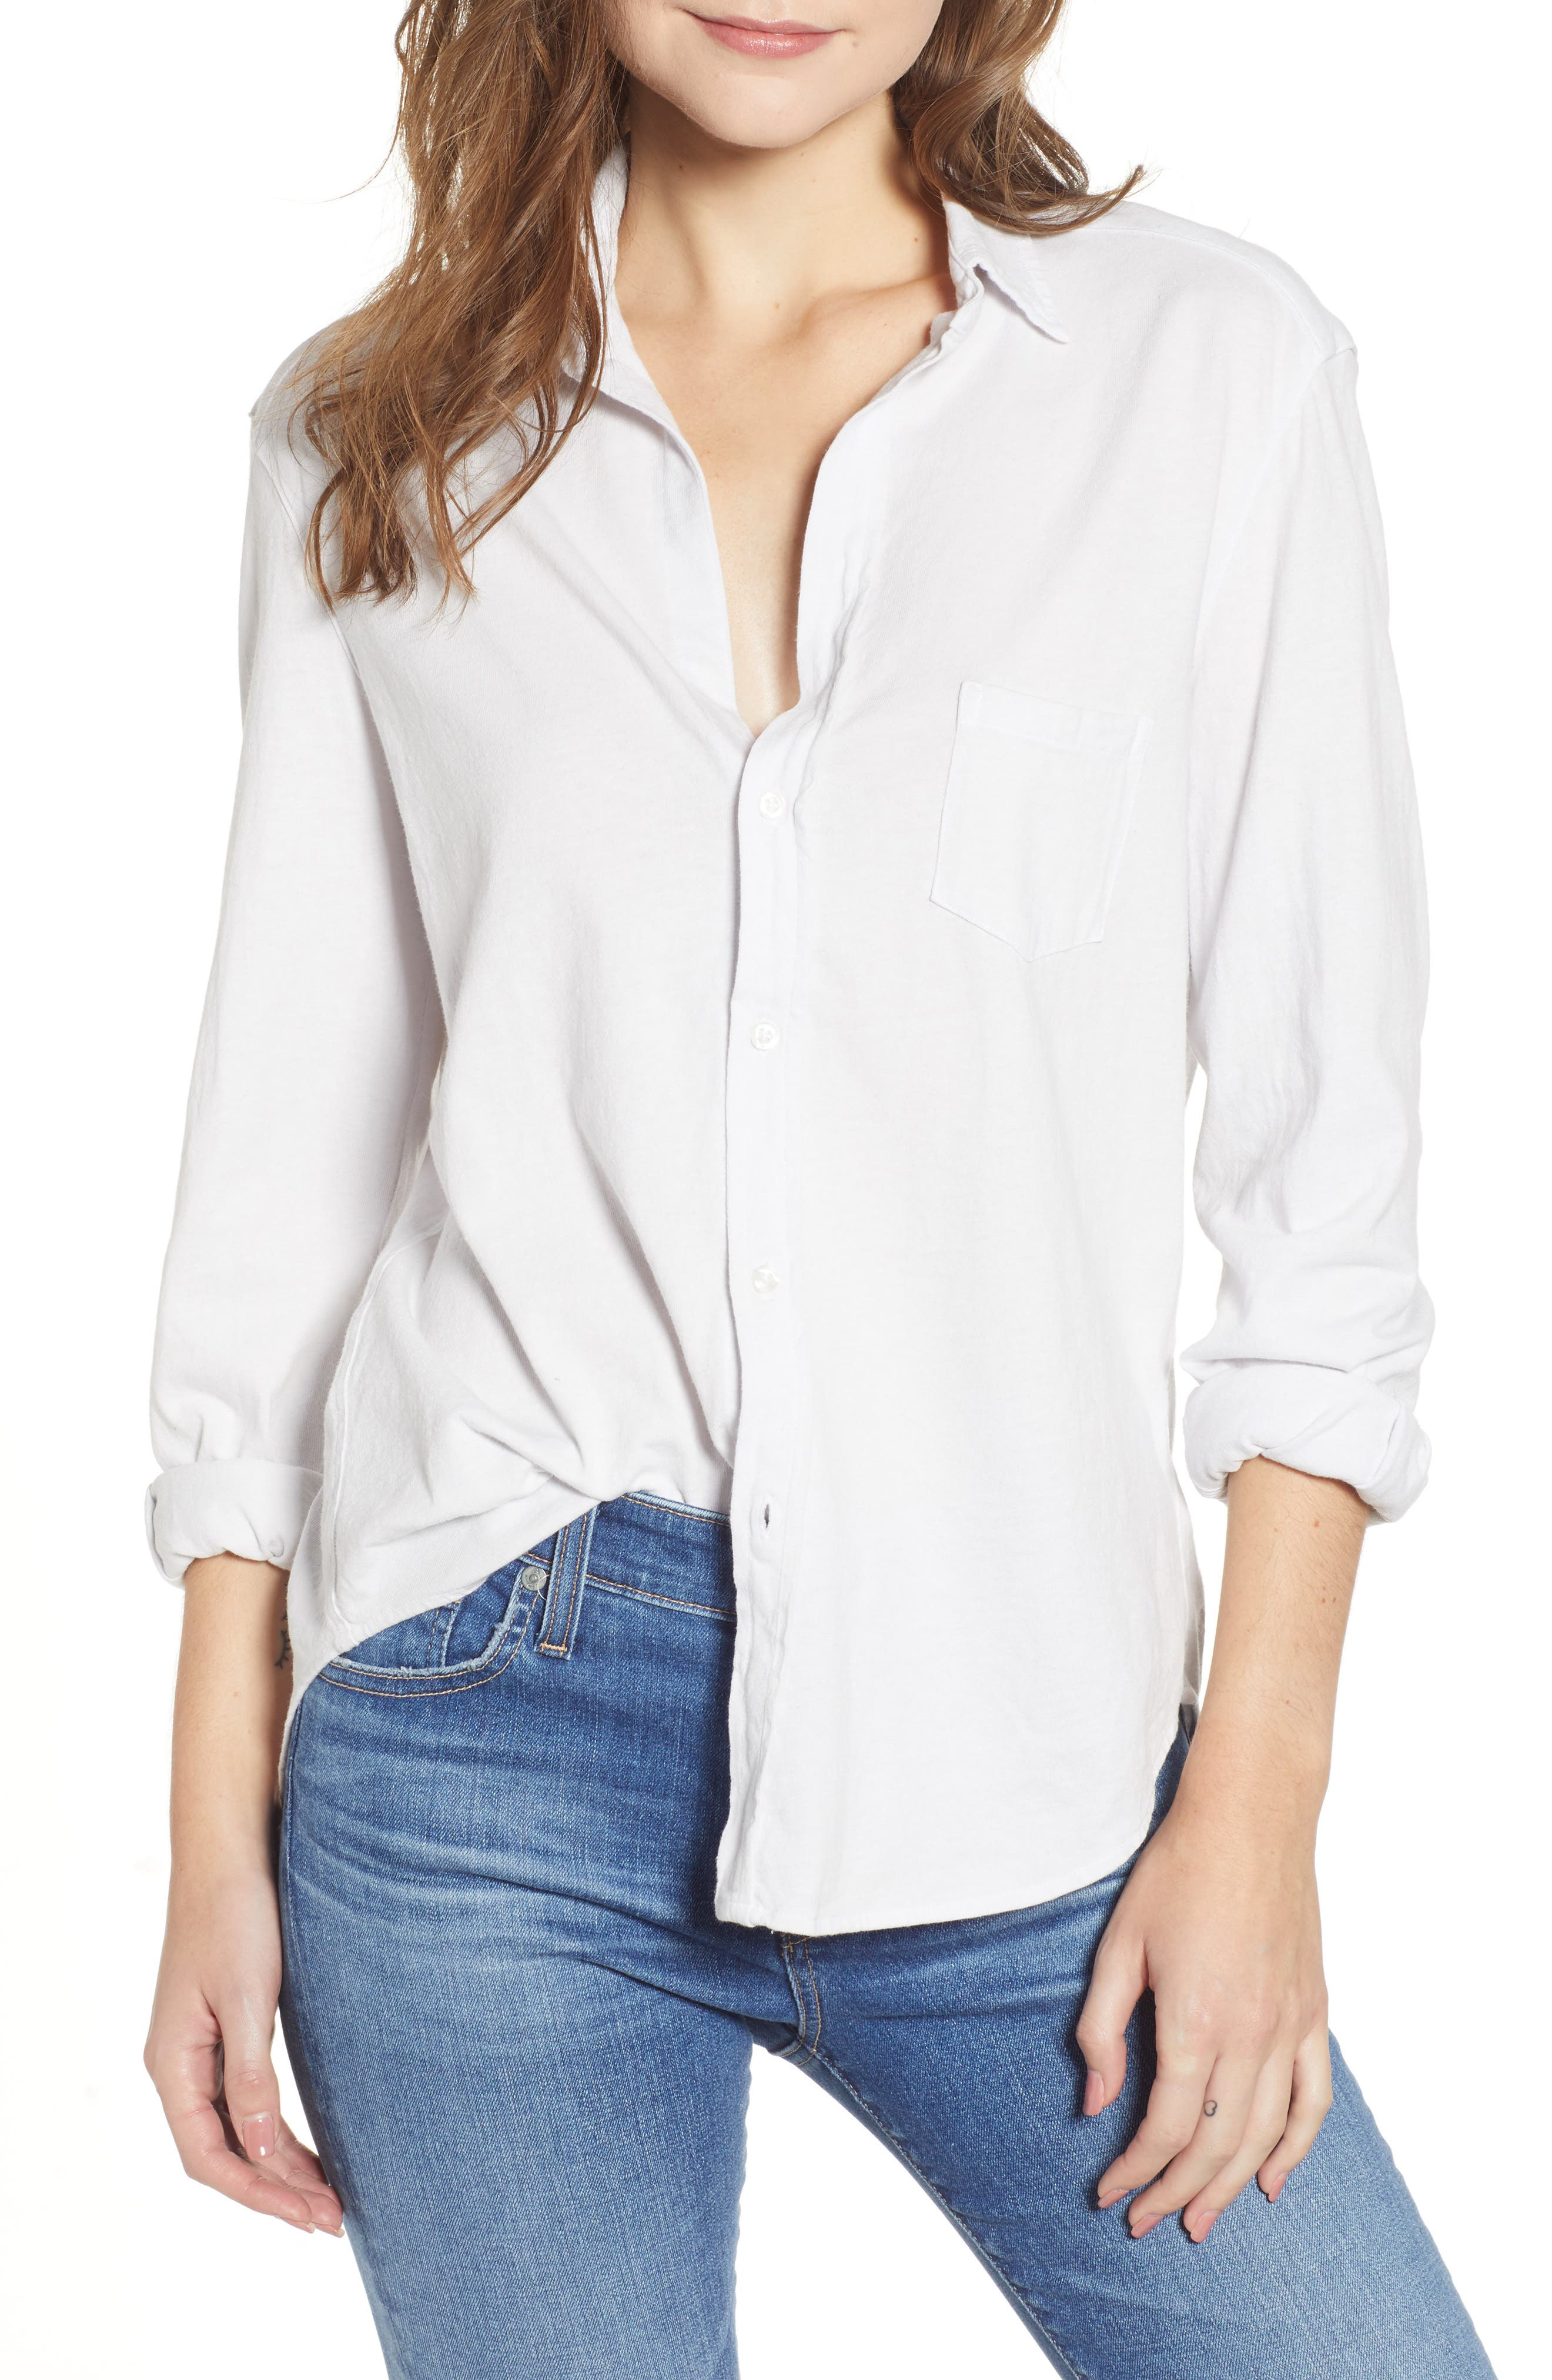 FRANK & EILEEN TEE LAB,                             Eileen Jersey Button Front Shirt,                             Main thumbnail 1, color,                             DIRTY WHITE